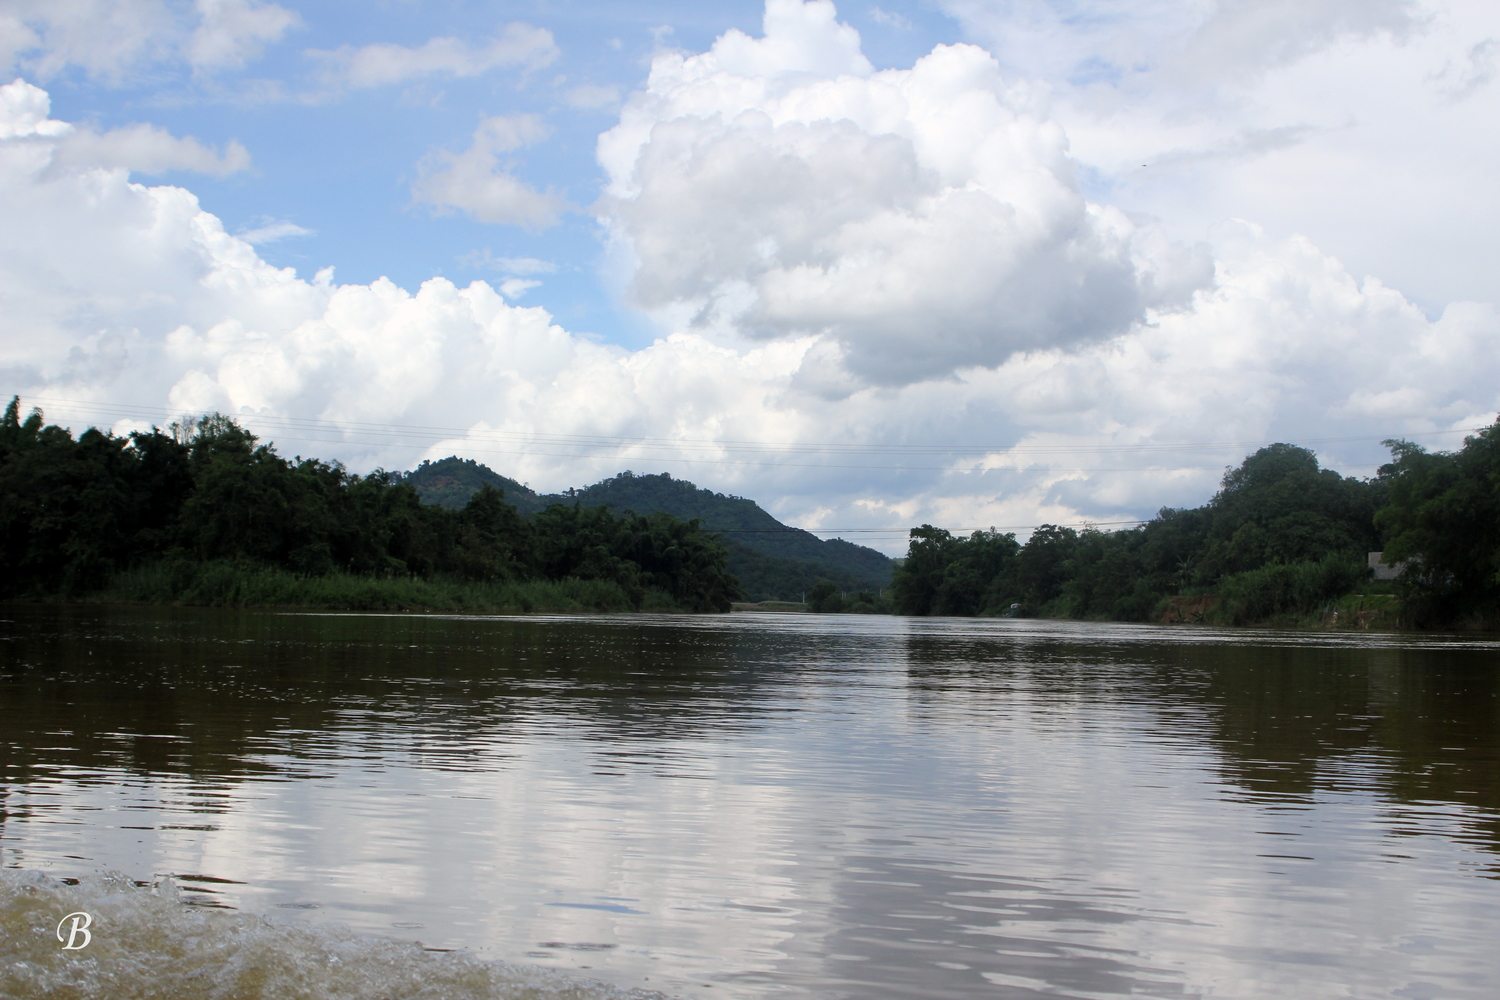 A Weekend in Cat Tien National Park